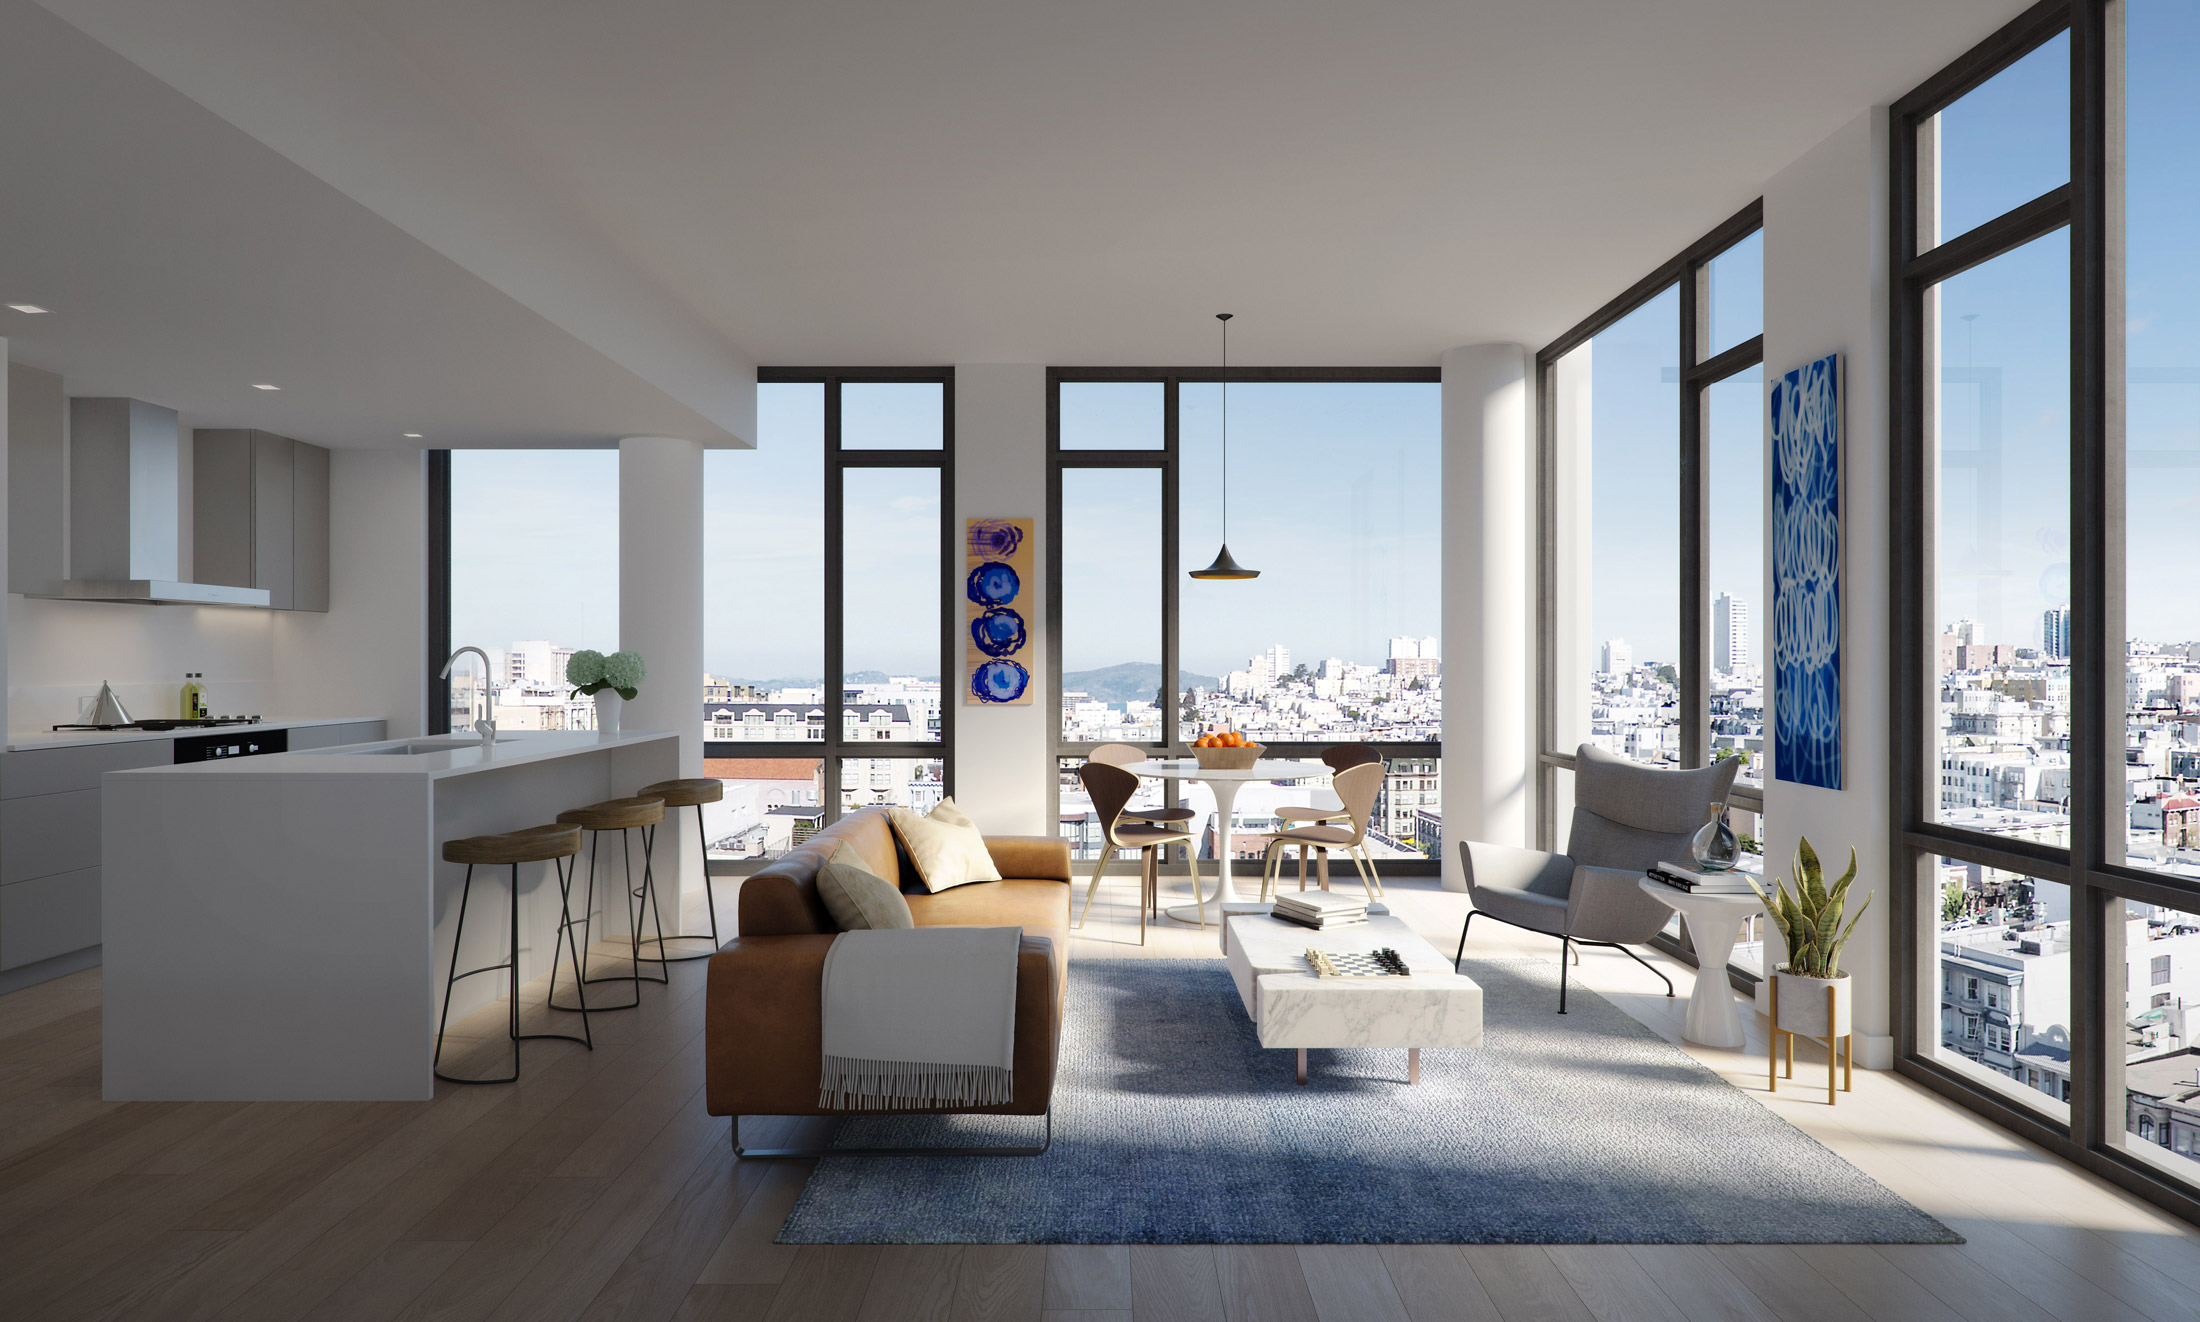 Architectural Rendering of the living room of the The Austin project located in San Francisco, California